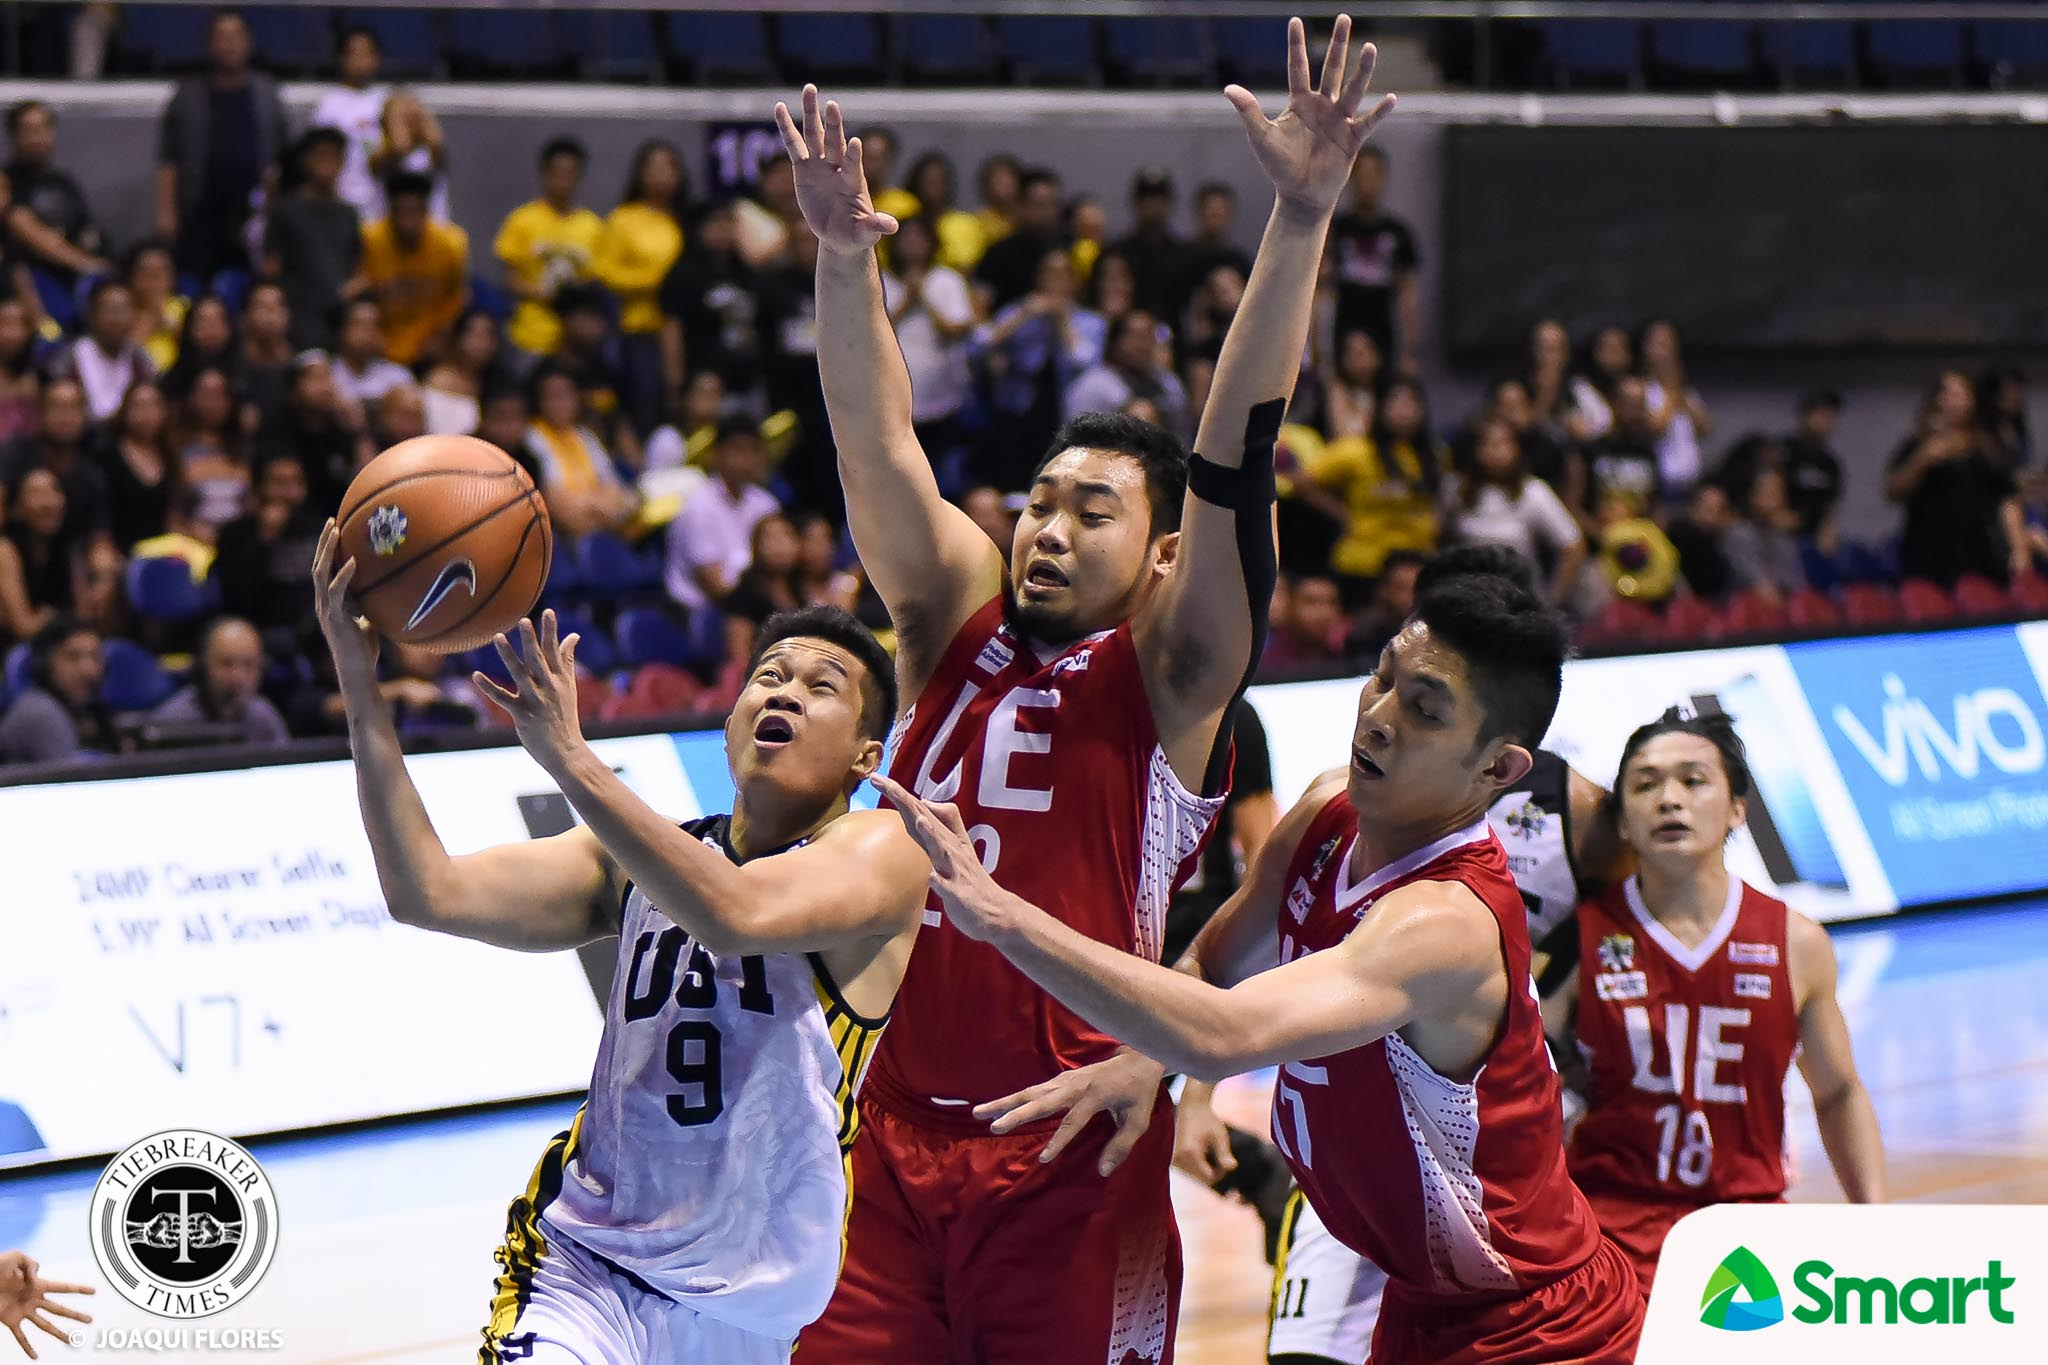 Philippine Sports News - Tiebreaker Times Alfrancis Chua willing to help out slumping Growling Tigers program News UAAP UST  UST Men's Basketball UAAP Season 80 Men's Basketball UAAP Season 80 Barangay Ginebra San Miguel Alfrancis Chua